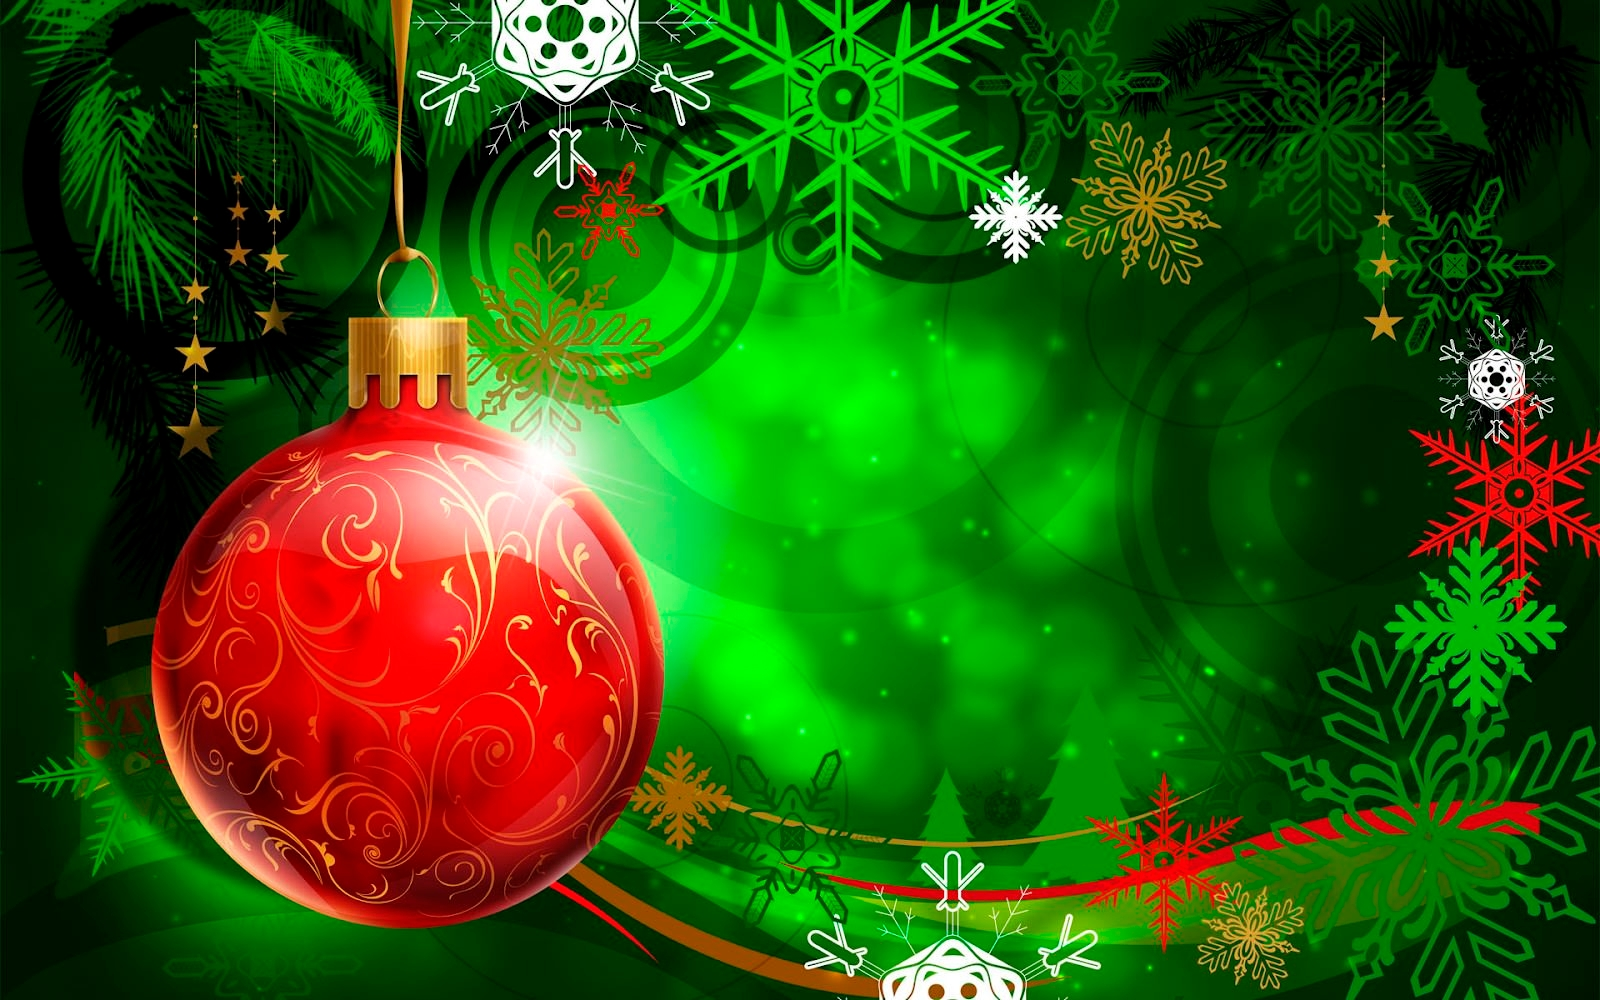 Holiday Backgrounds,Balls,Christmas